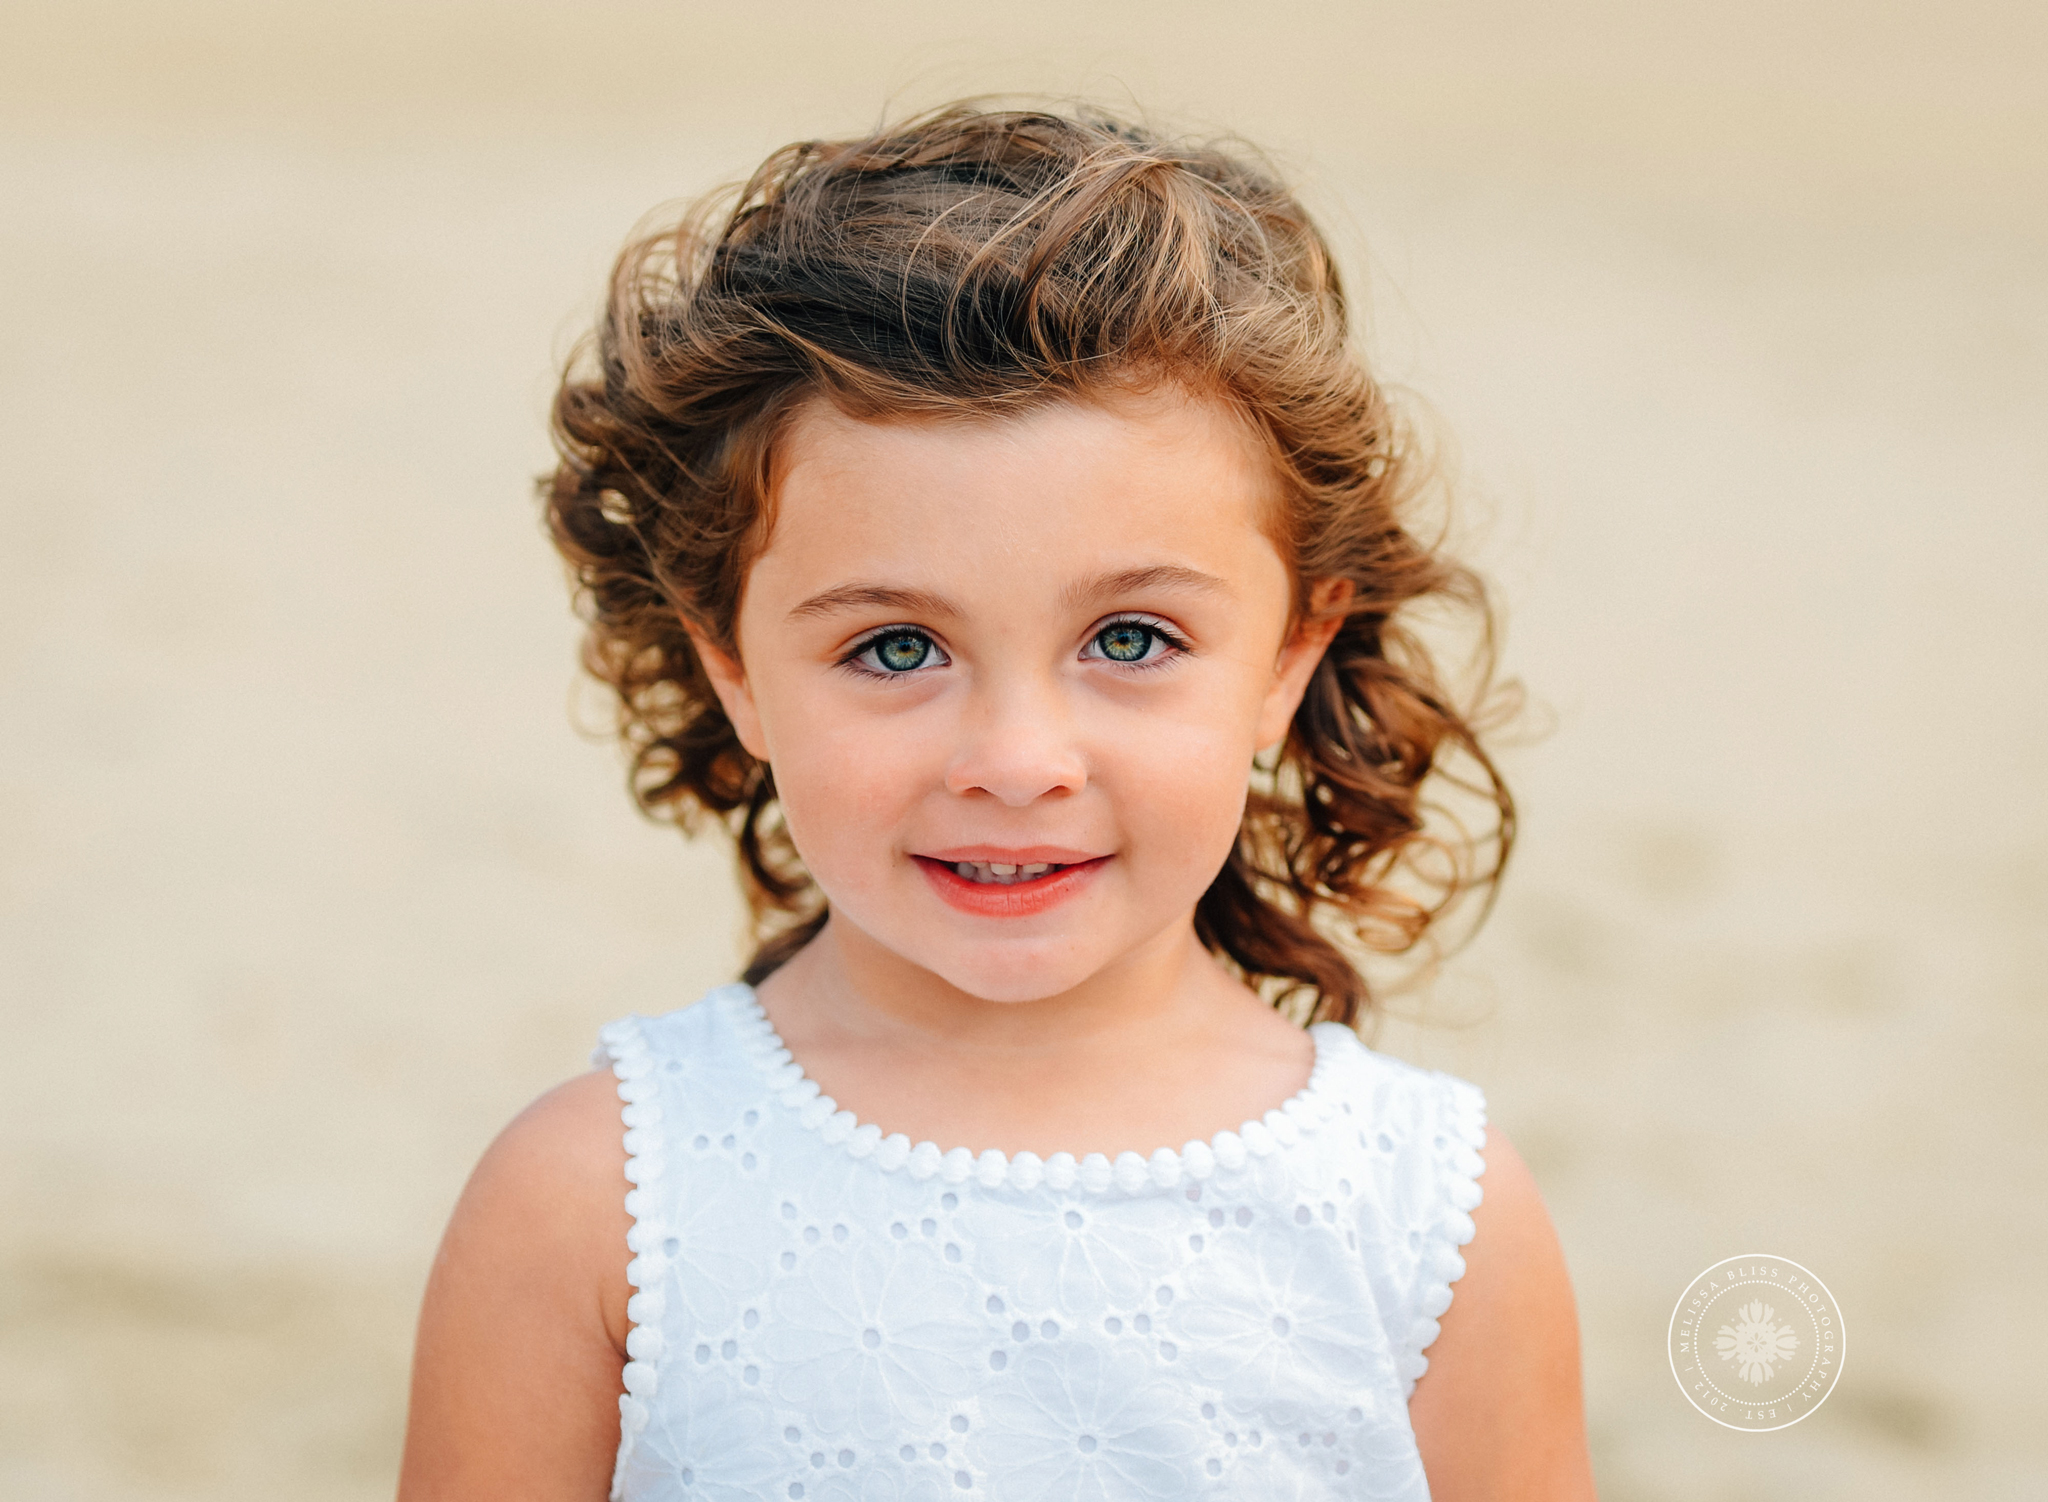 melissa-bliss-photography-hampton-roads-child-photographes-virginia-beach-norfolk-chesapeake-suffolk.jpg